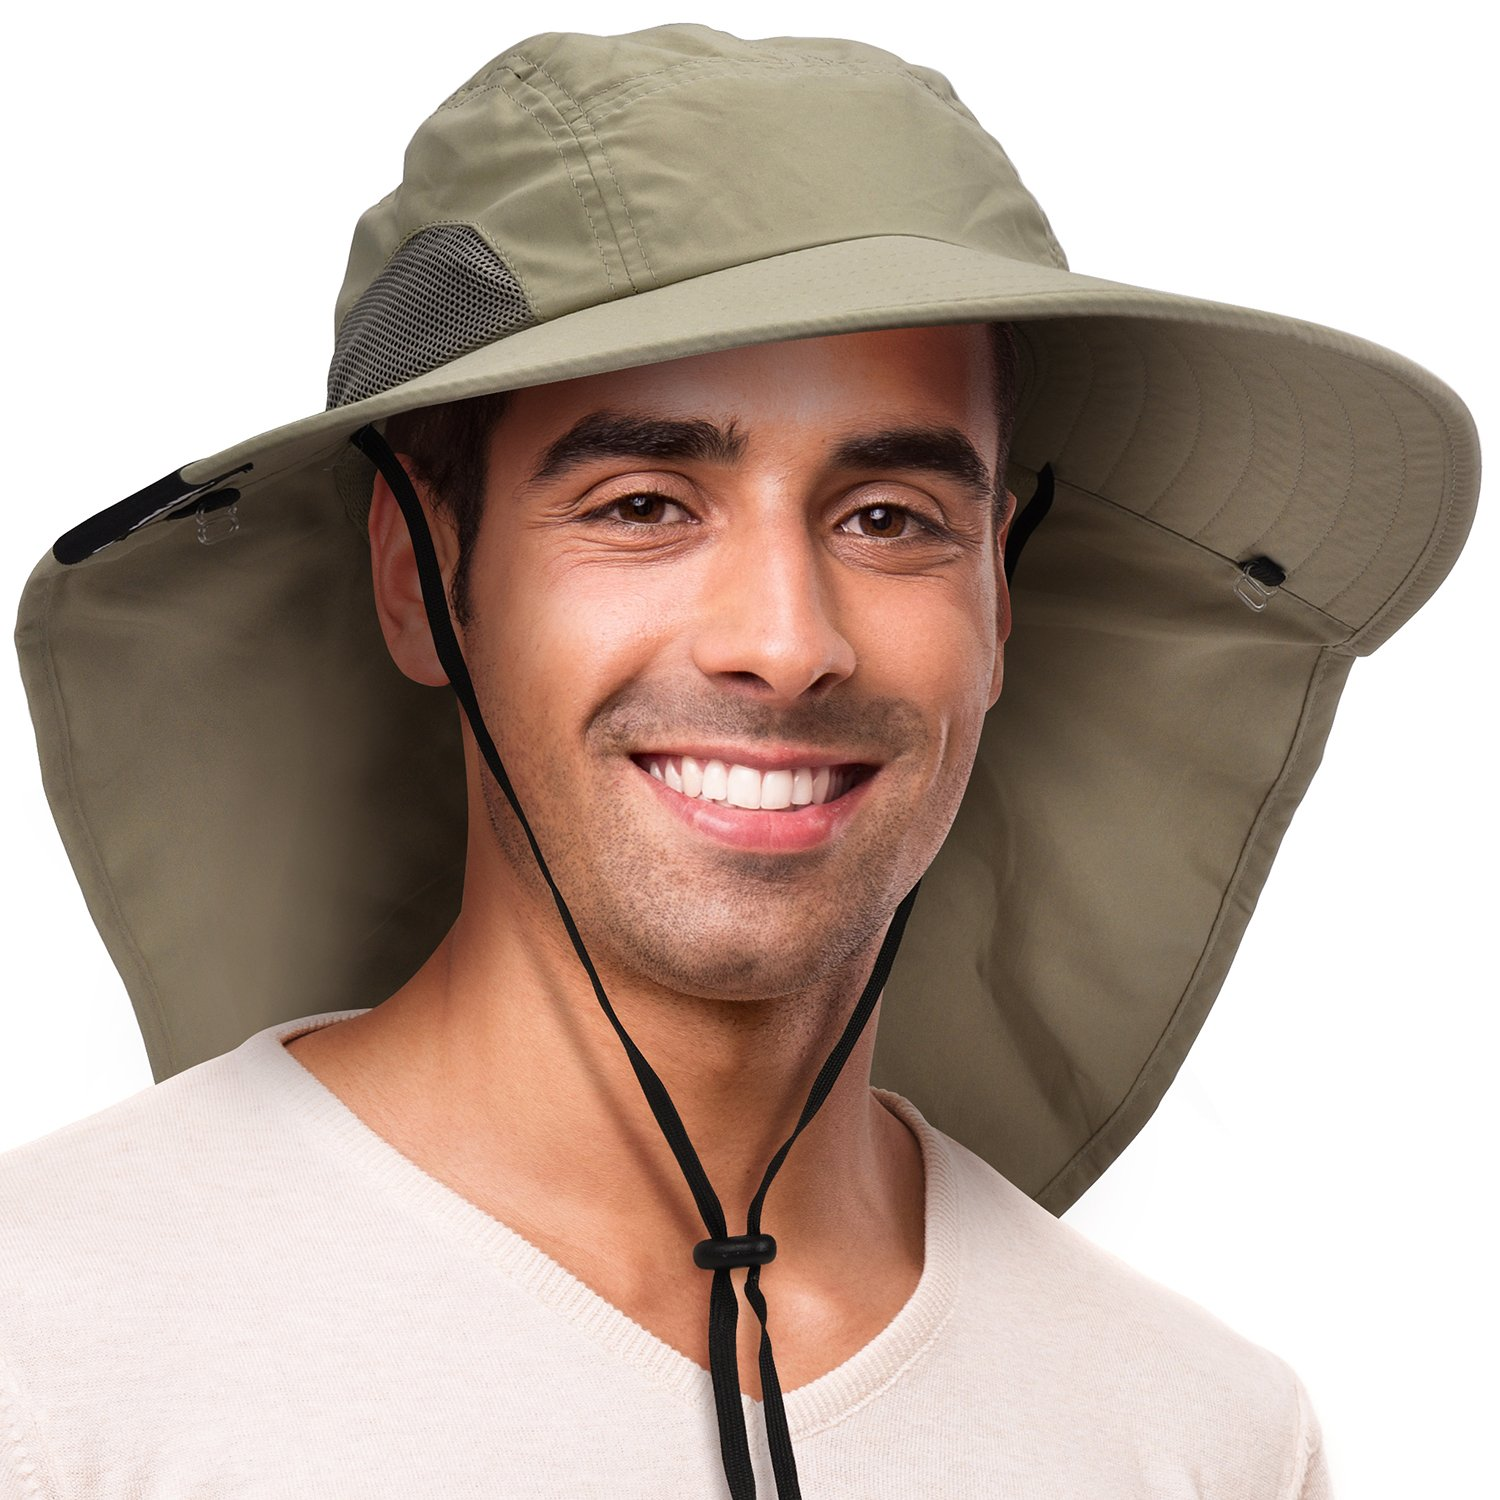 Solaris Outdoor Fishing Hat with Ear Neck Flap Cover Wide Brim Sun Protection Safari Cap for Men Women Hunting, Hiking, Camping, Boating & Outdoor Adventures